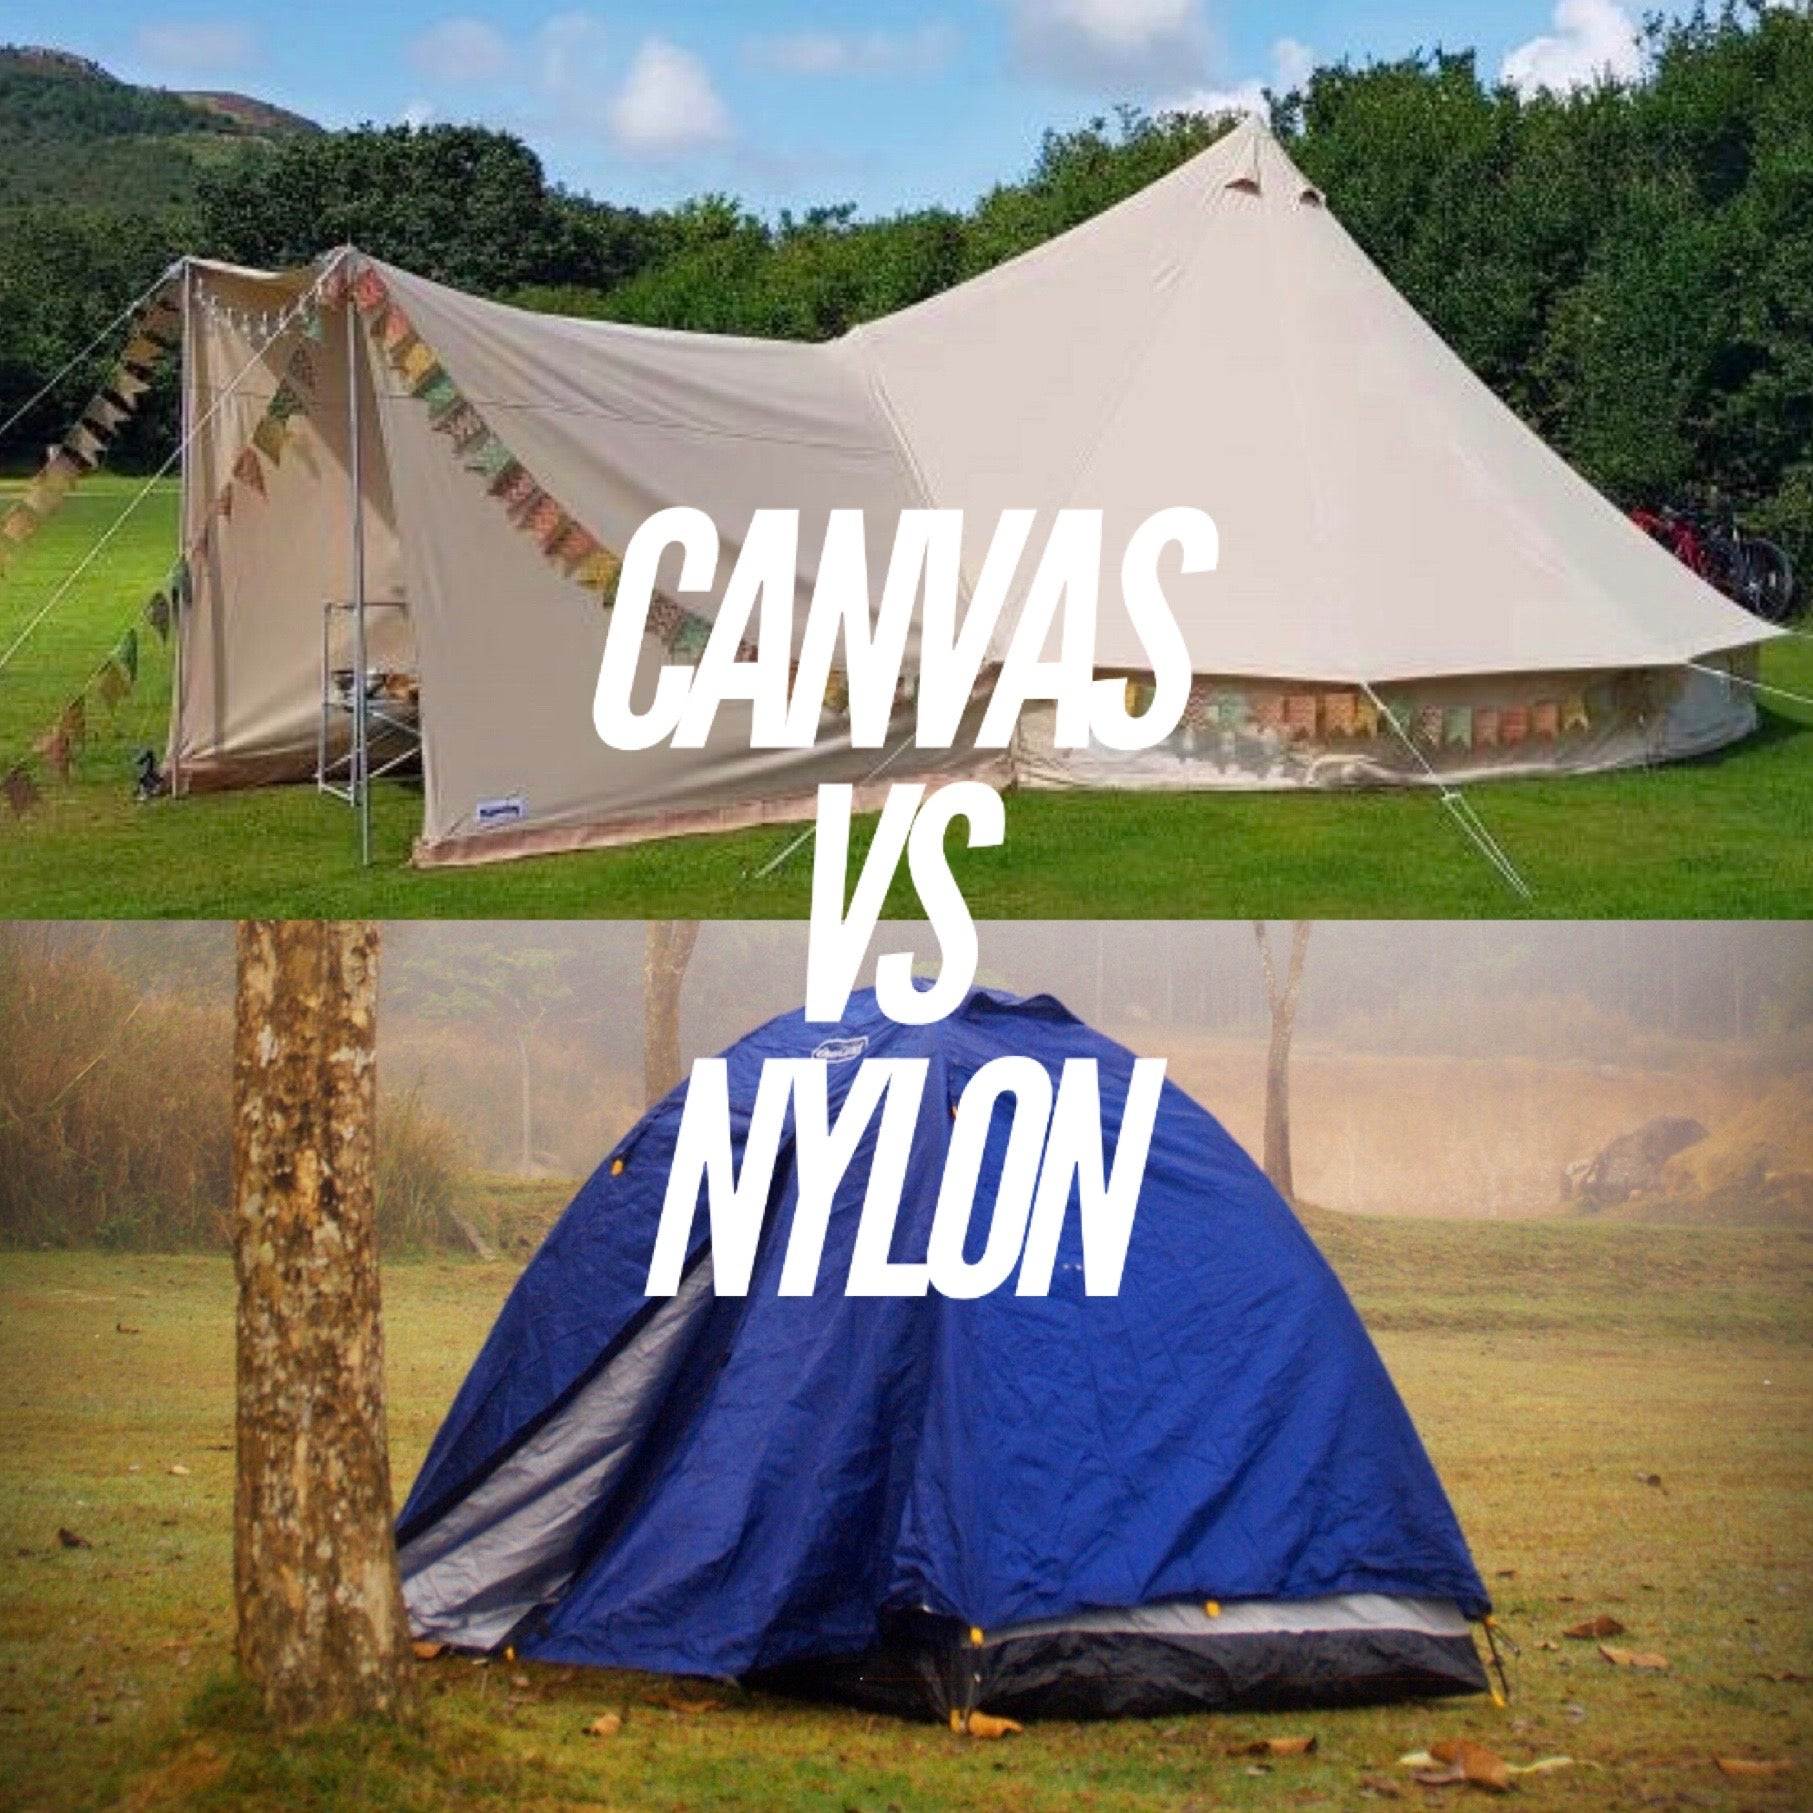 "A canvas and a nylon tent with the text ""Canvas vs nylon"""